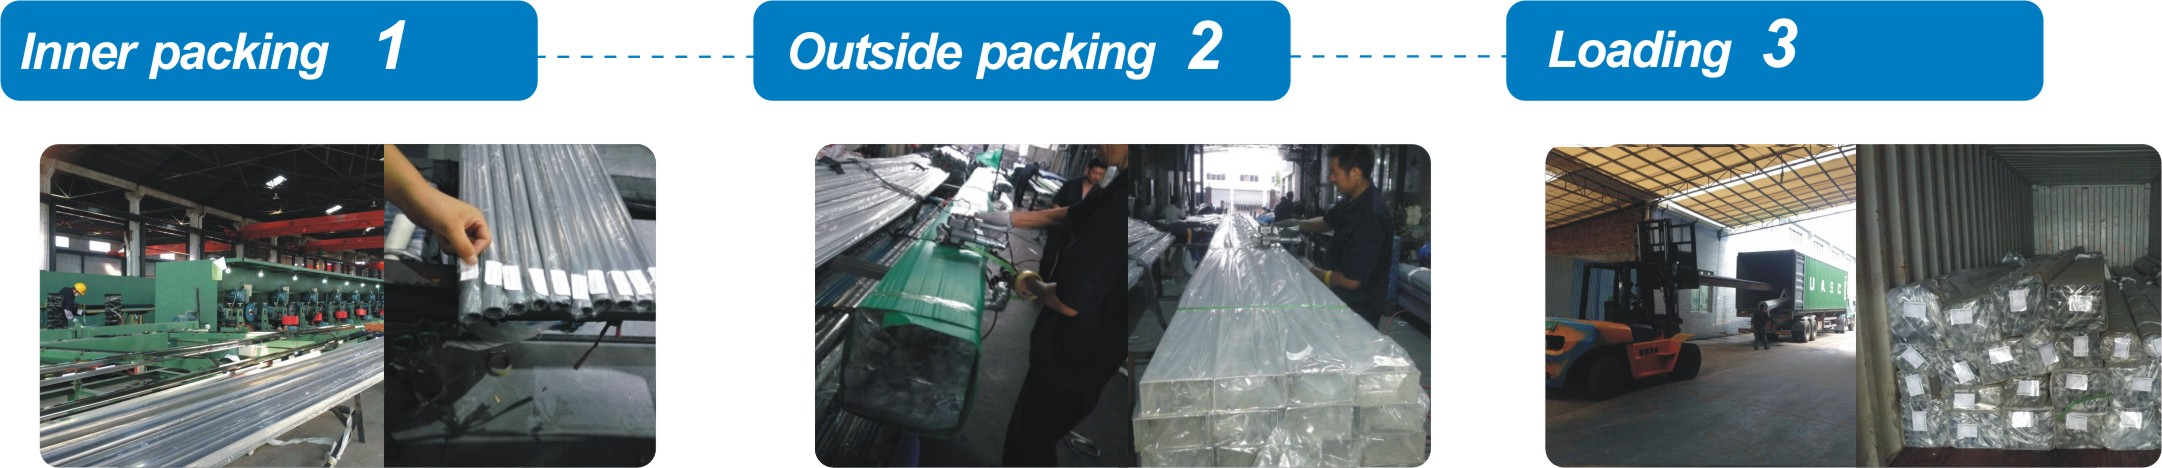 stainless steel tube packaging